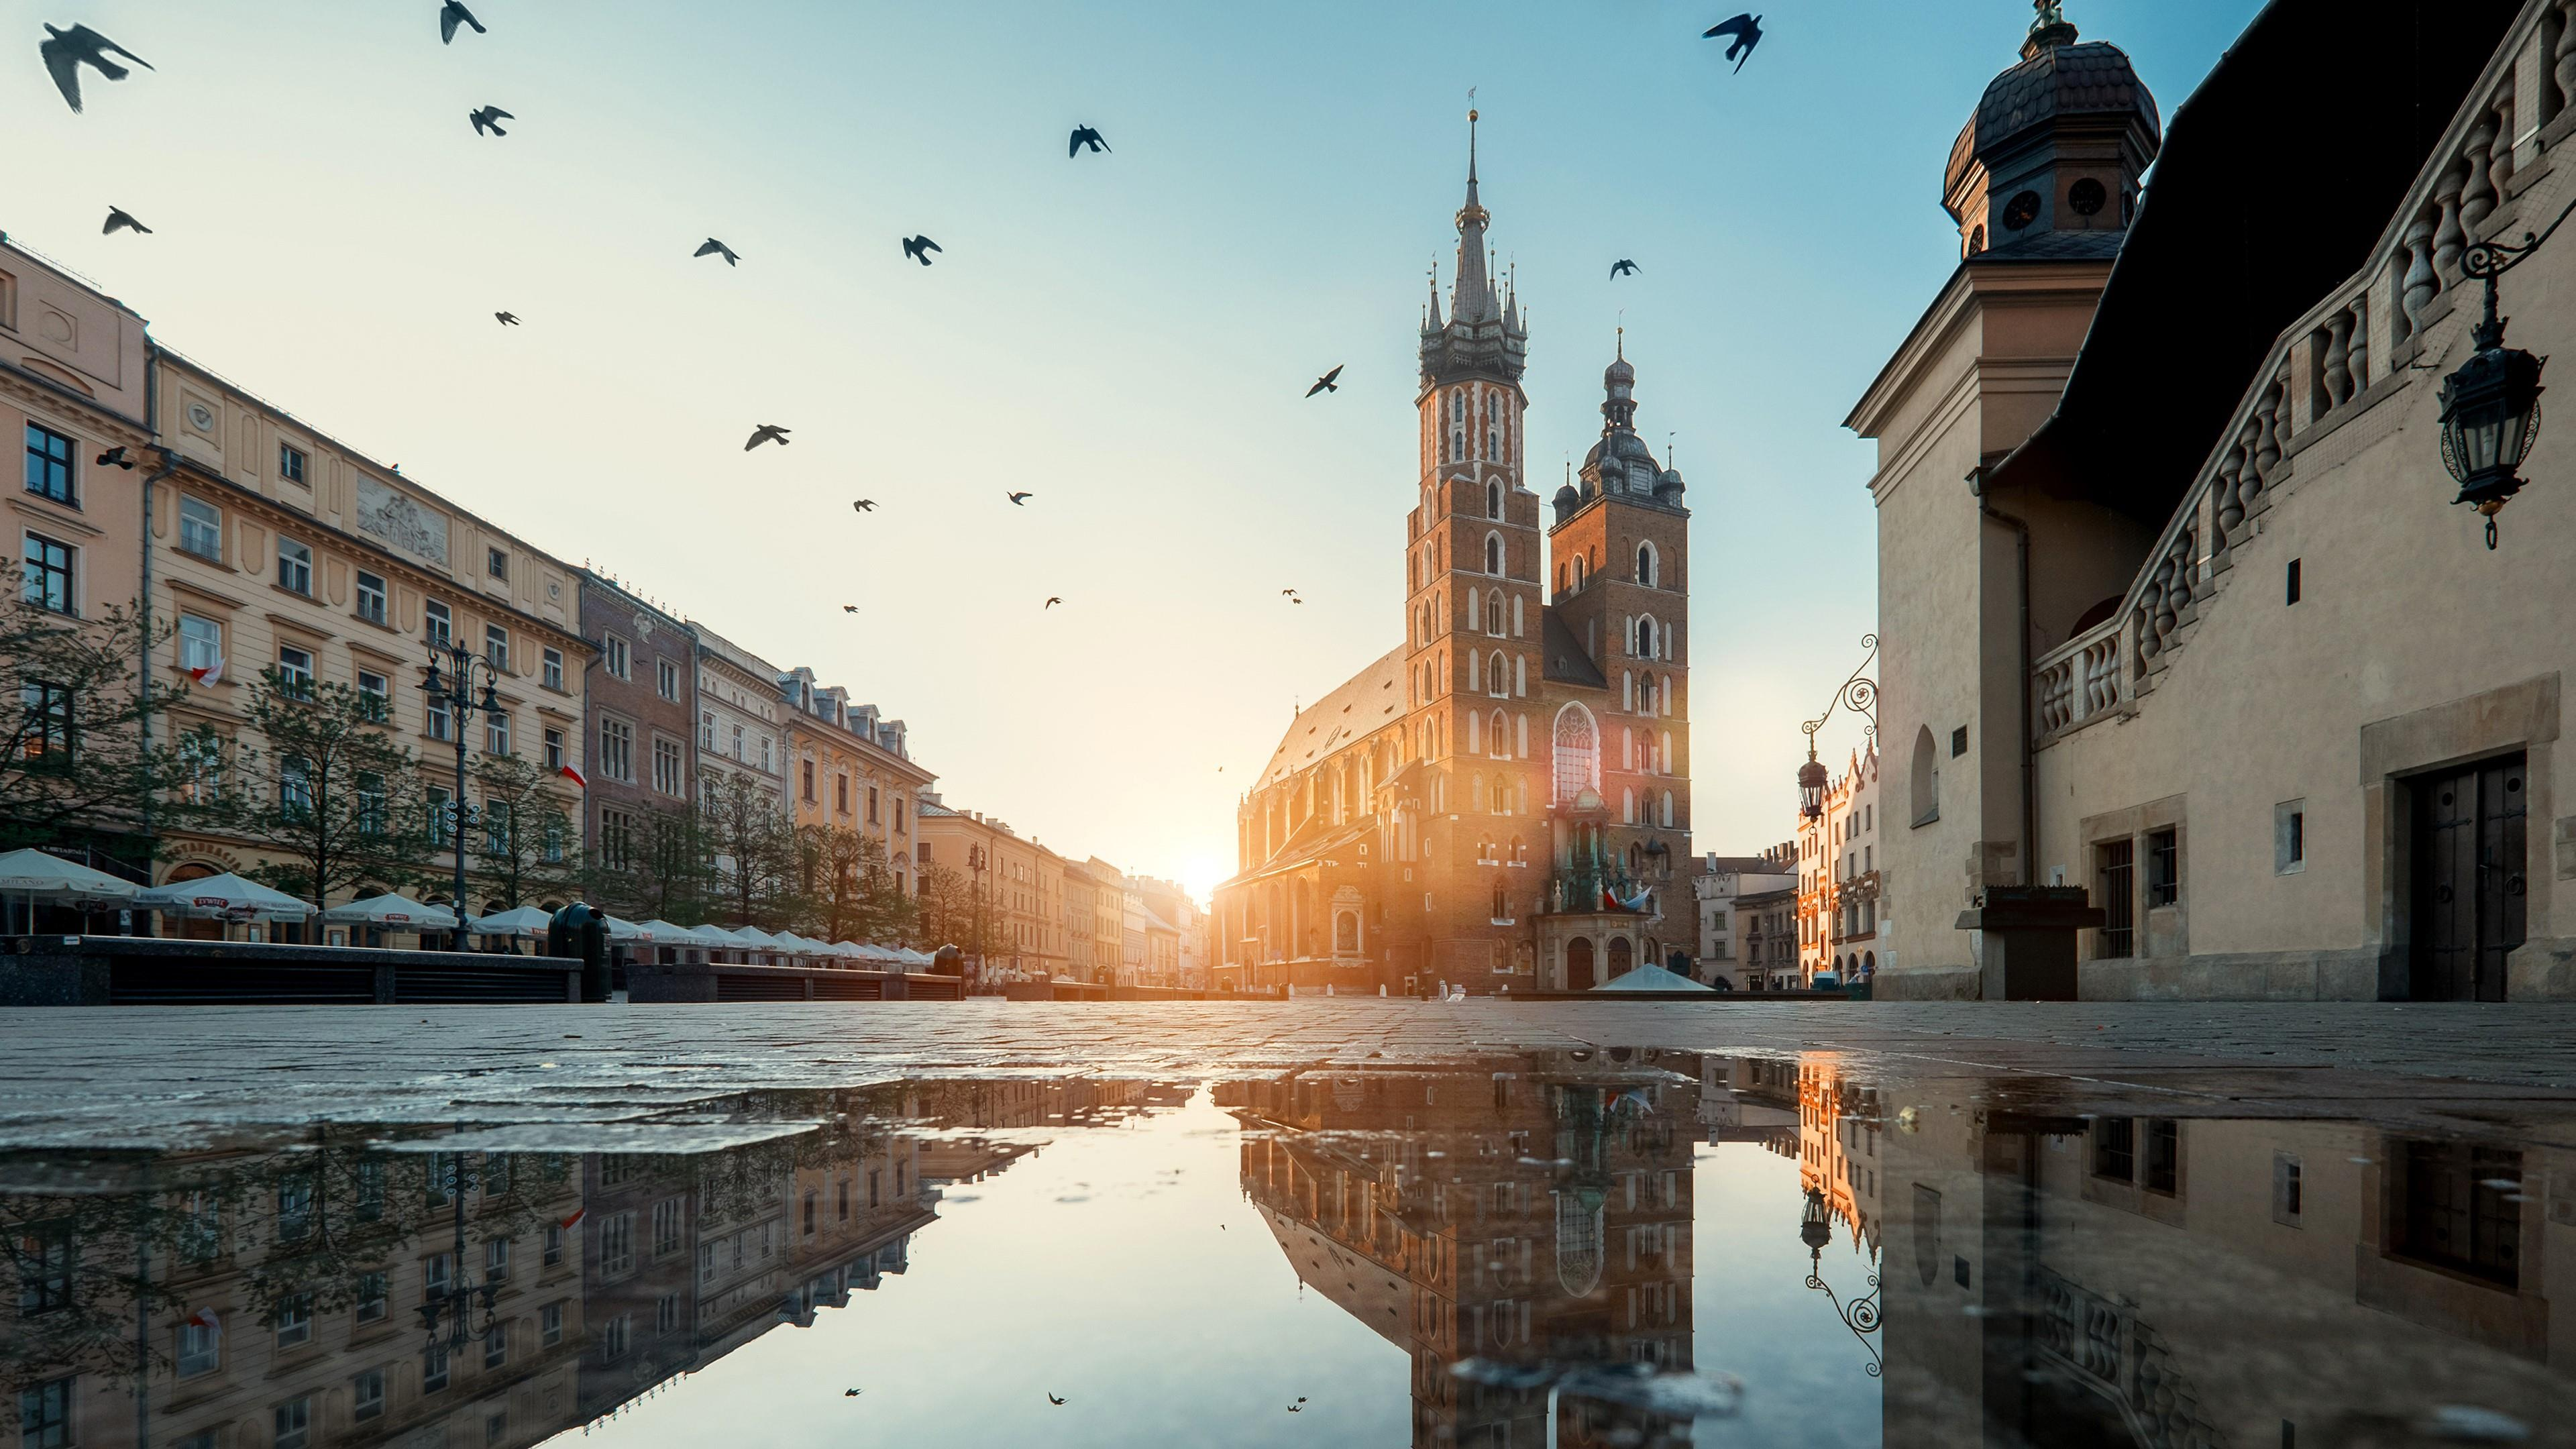 St Marys Basilica Krakow 4K UltraHD Wallpaper 3840x2160